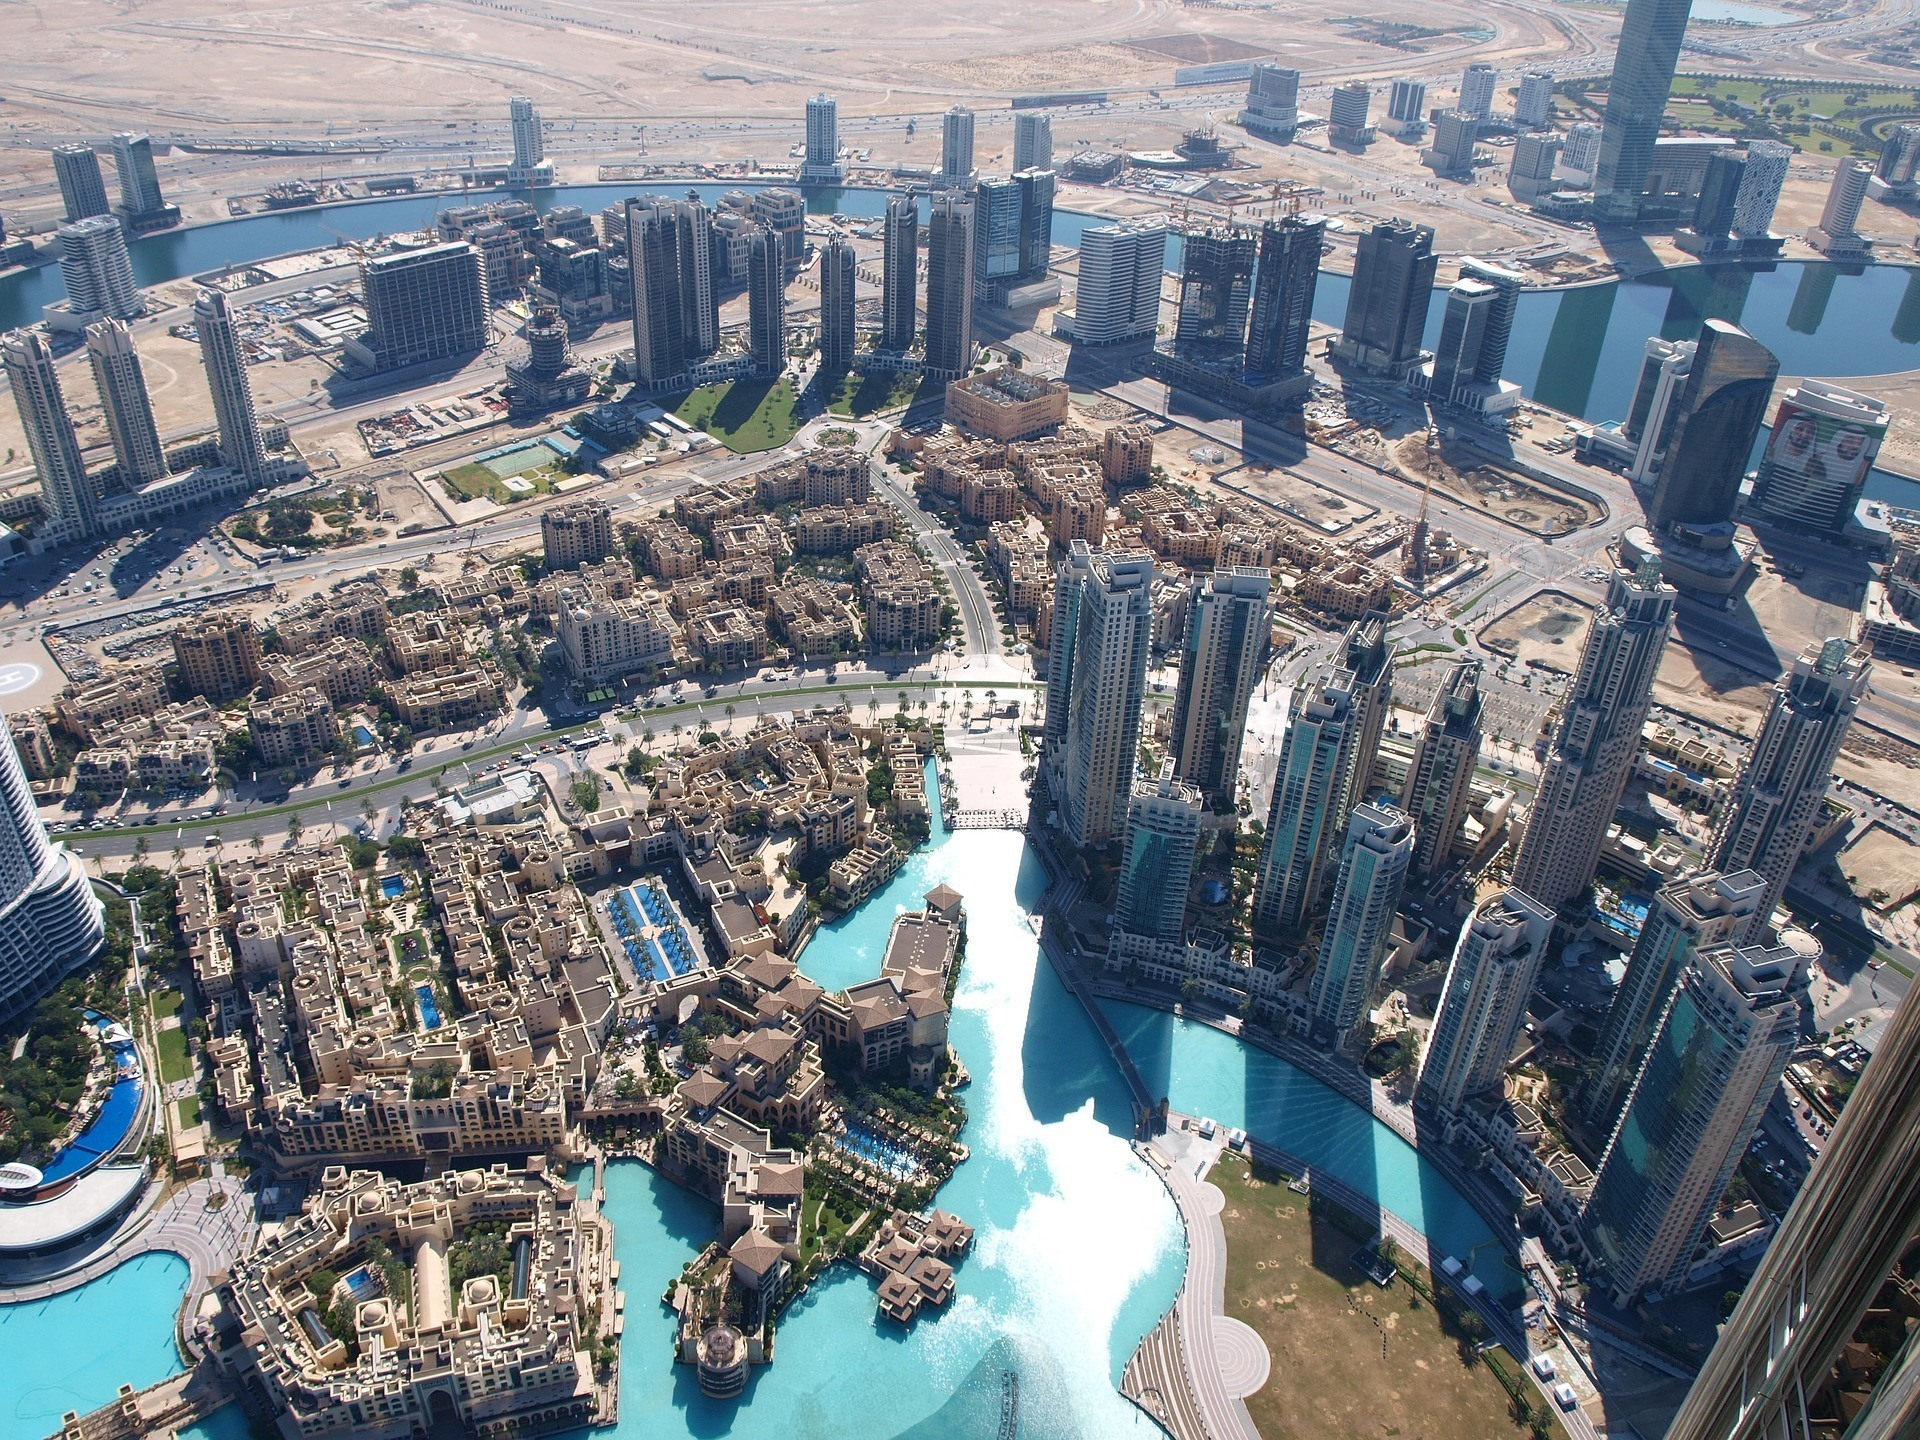 Aerial shot of Dubai city looking very safe